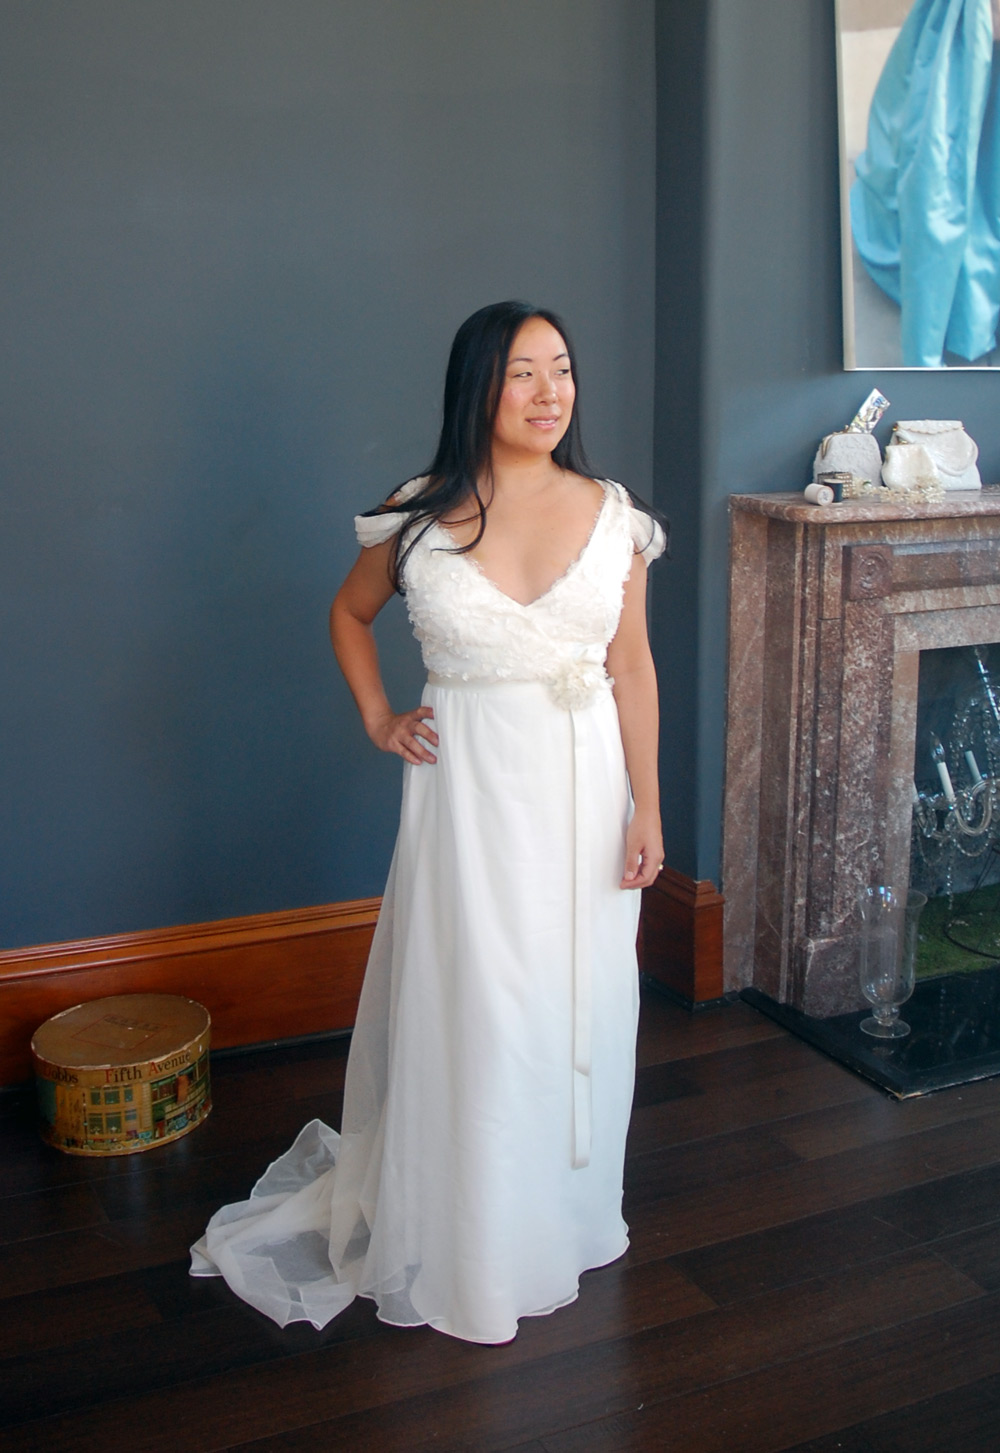 Maria knows how to work her angles in her custom wedding gown!